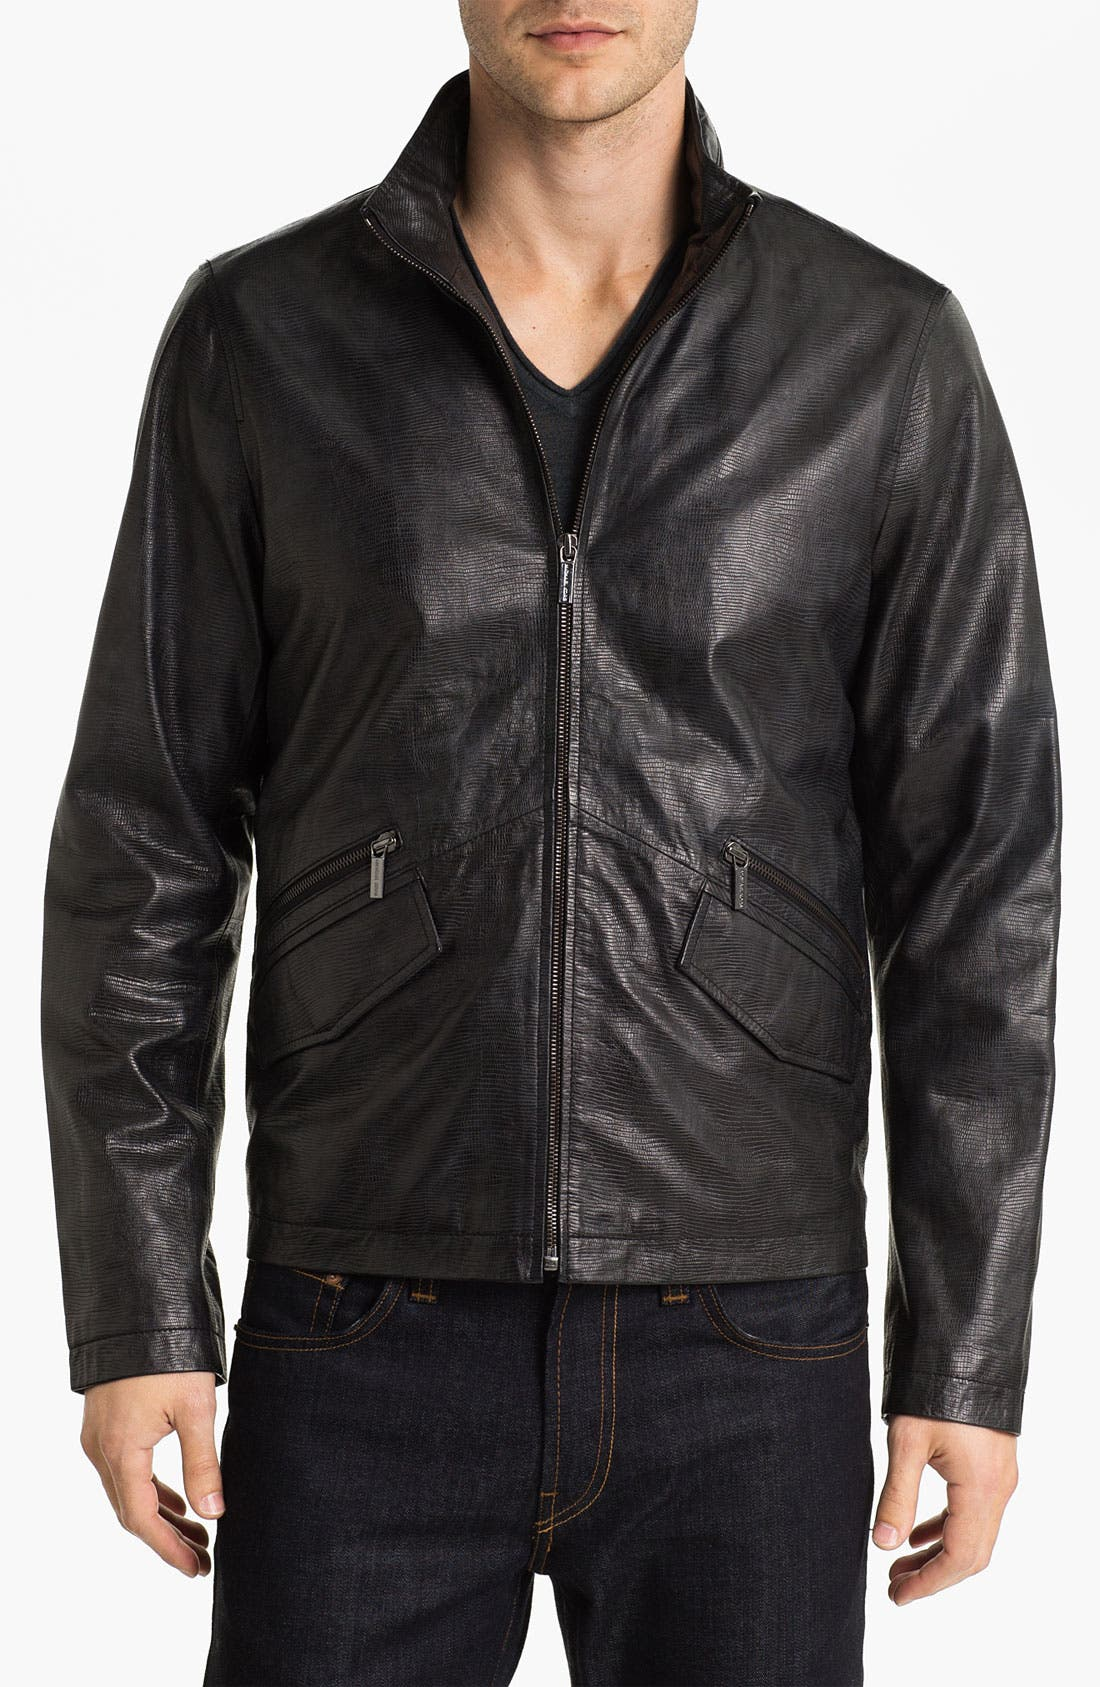 Alternate Image 1 Selected - Michael Kors Embossed Leather Jacket (Online Exclusive)